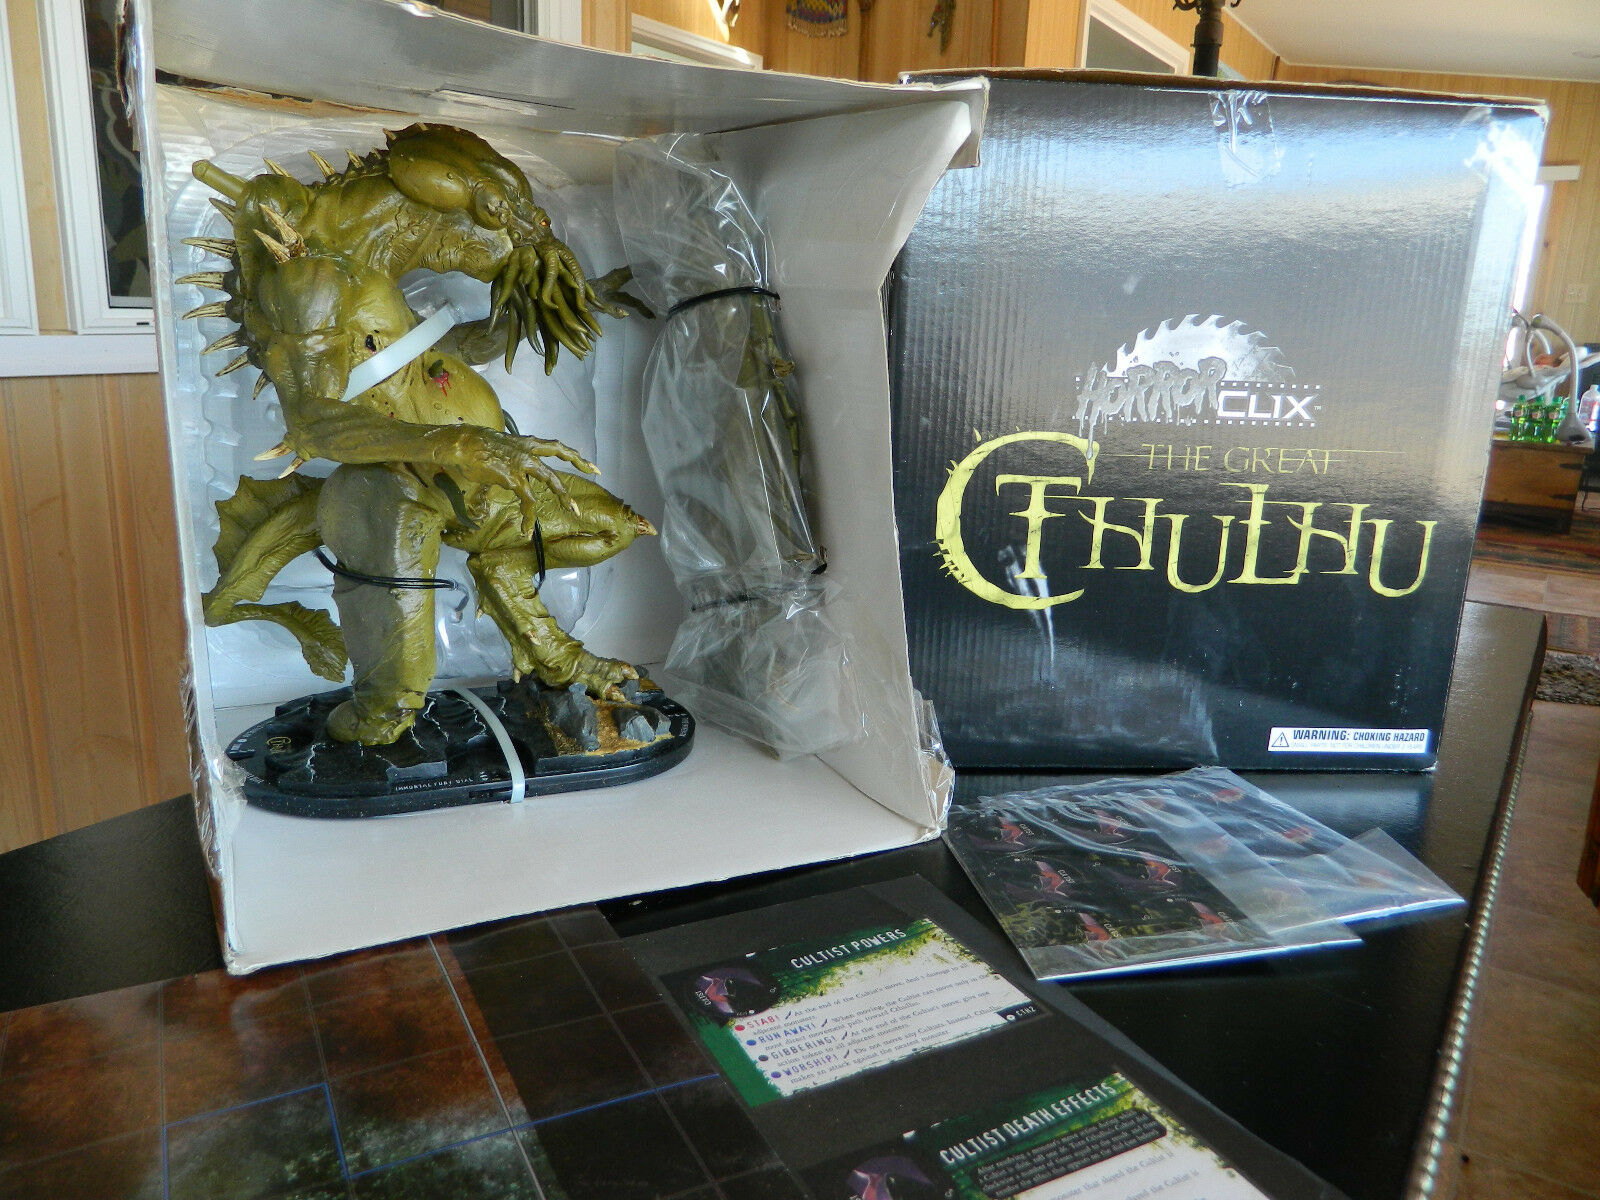 Horrorclix Great Cthulhu. NIB new colossal gargantuan RPG D&D Pathfinder HUGE.